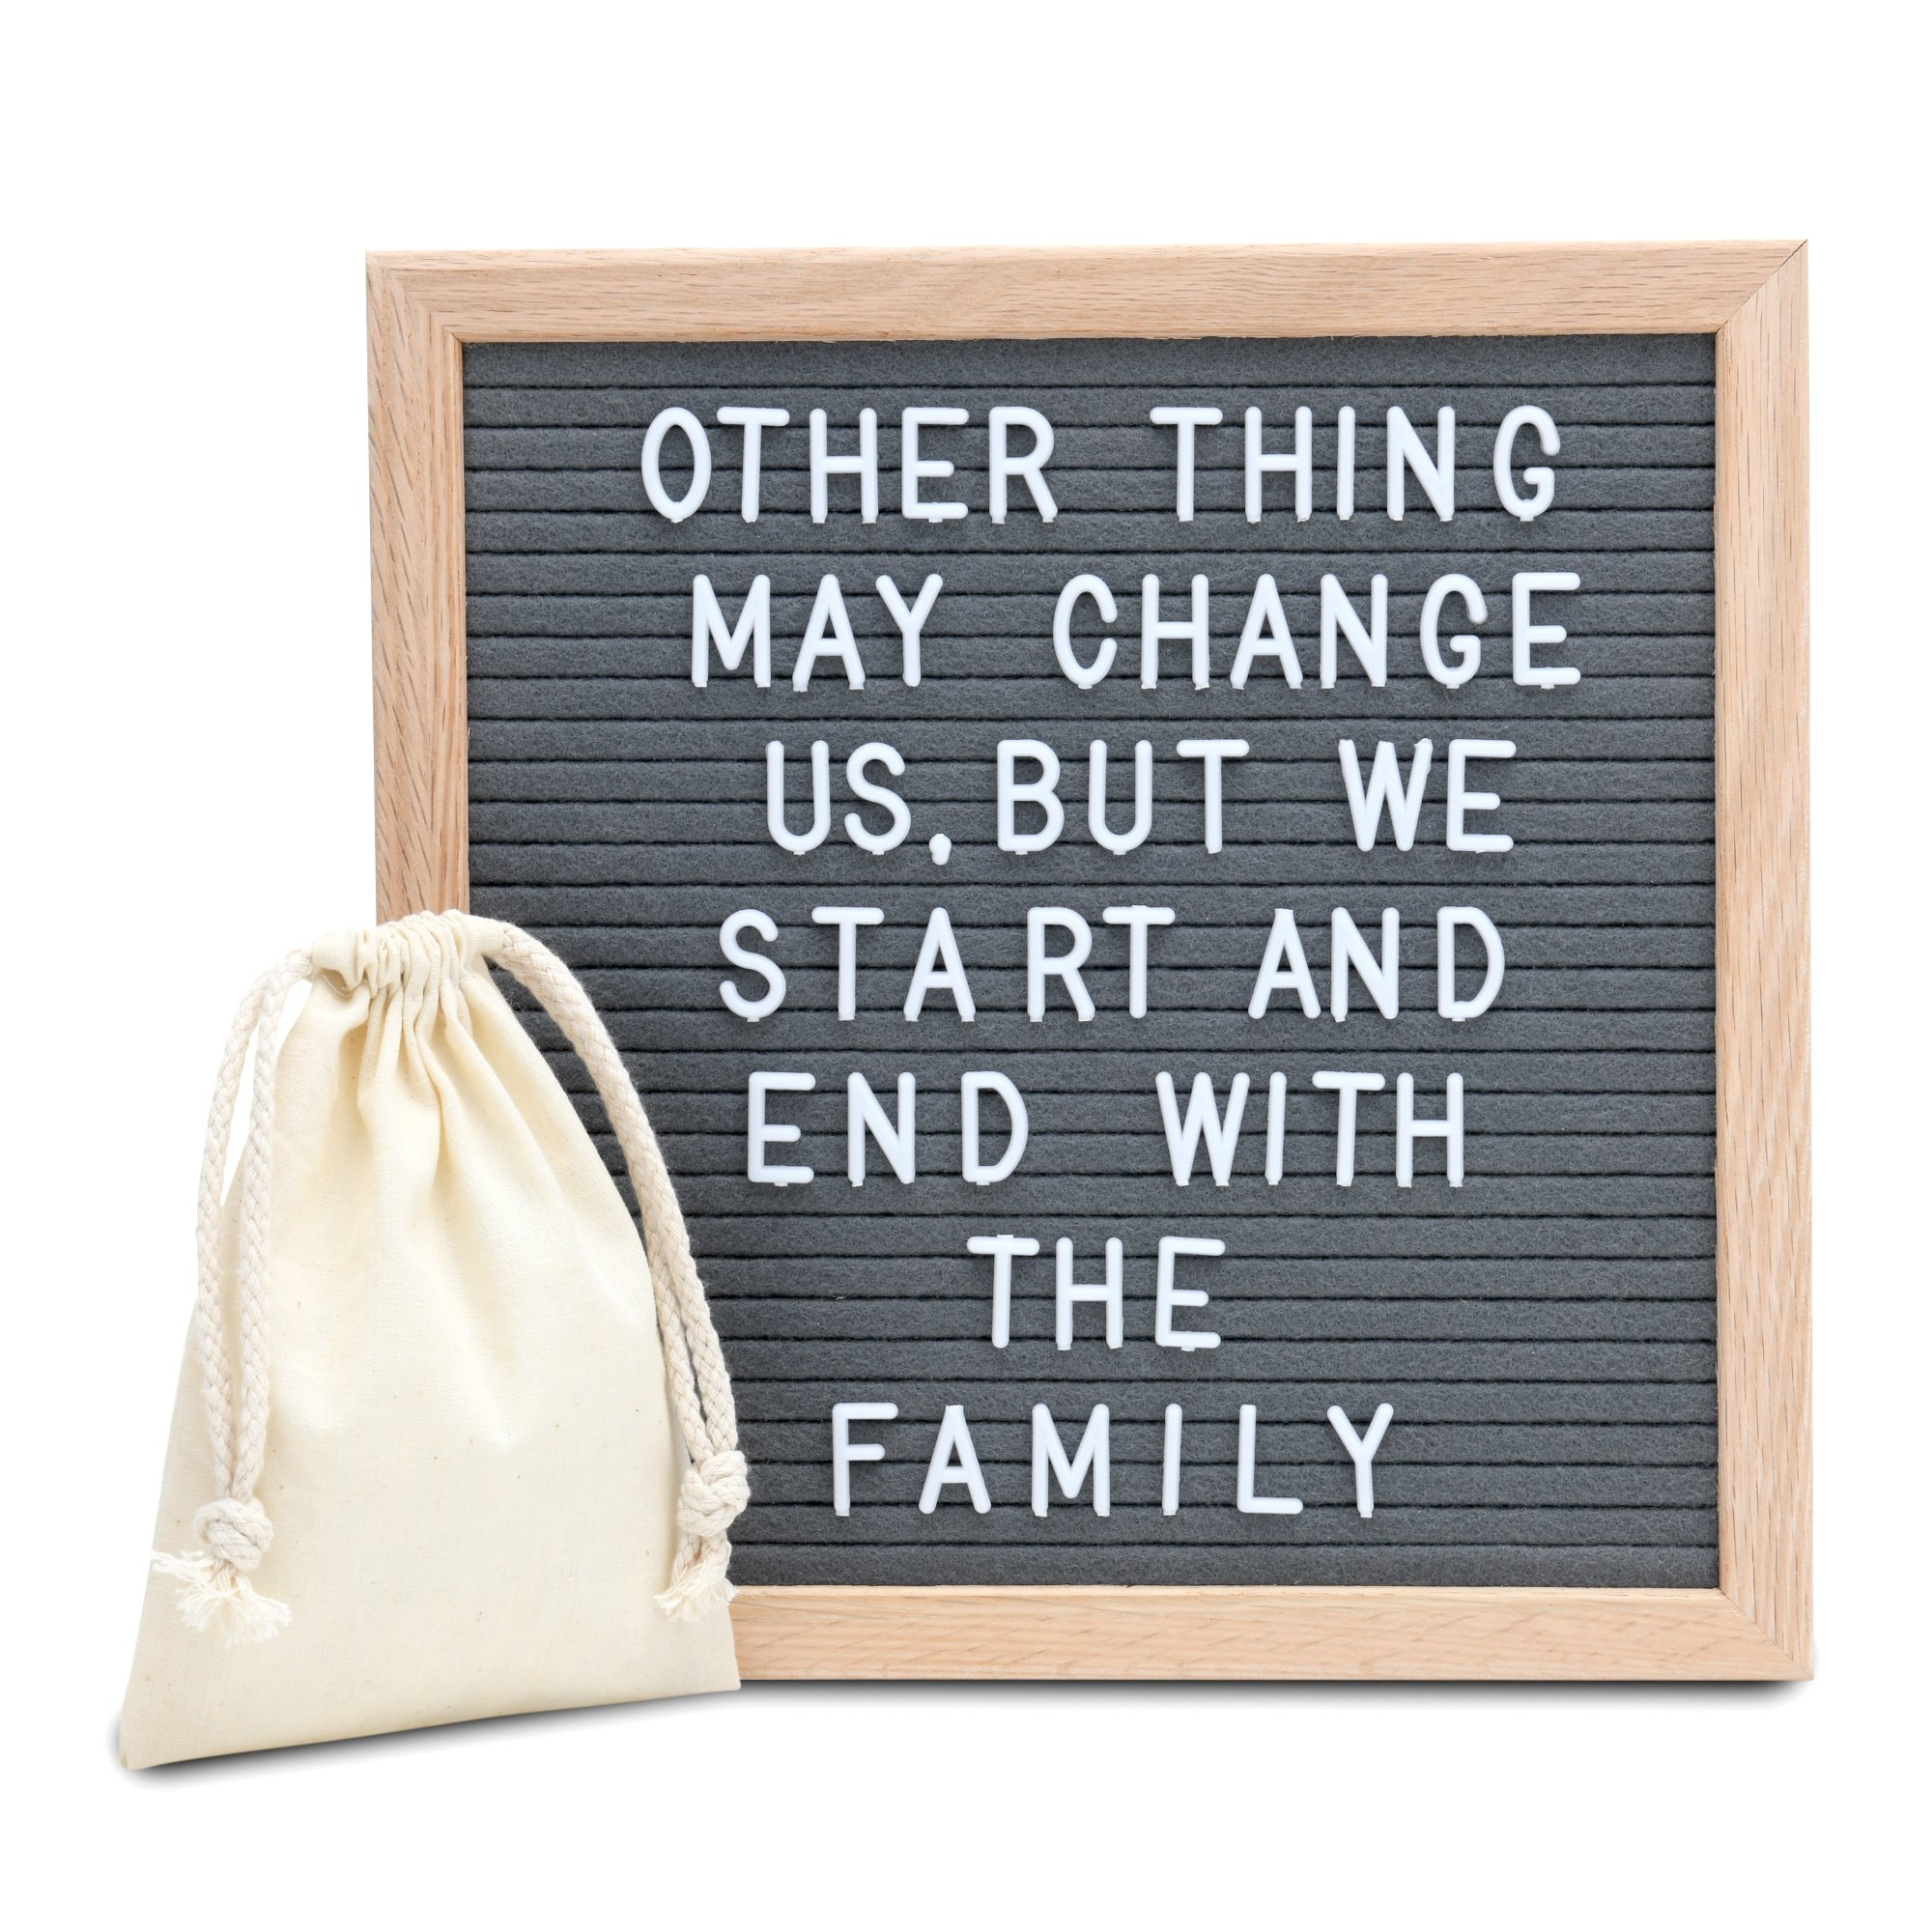 Amstorm AMSTROM Gray Felt Letter Board 10x10 Inches, Wall Mount Changable Letter Board with 300 Letters and Symbols, Oak Frame Changeable Wooden Message Board Sign